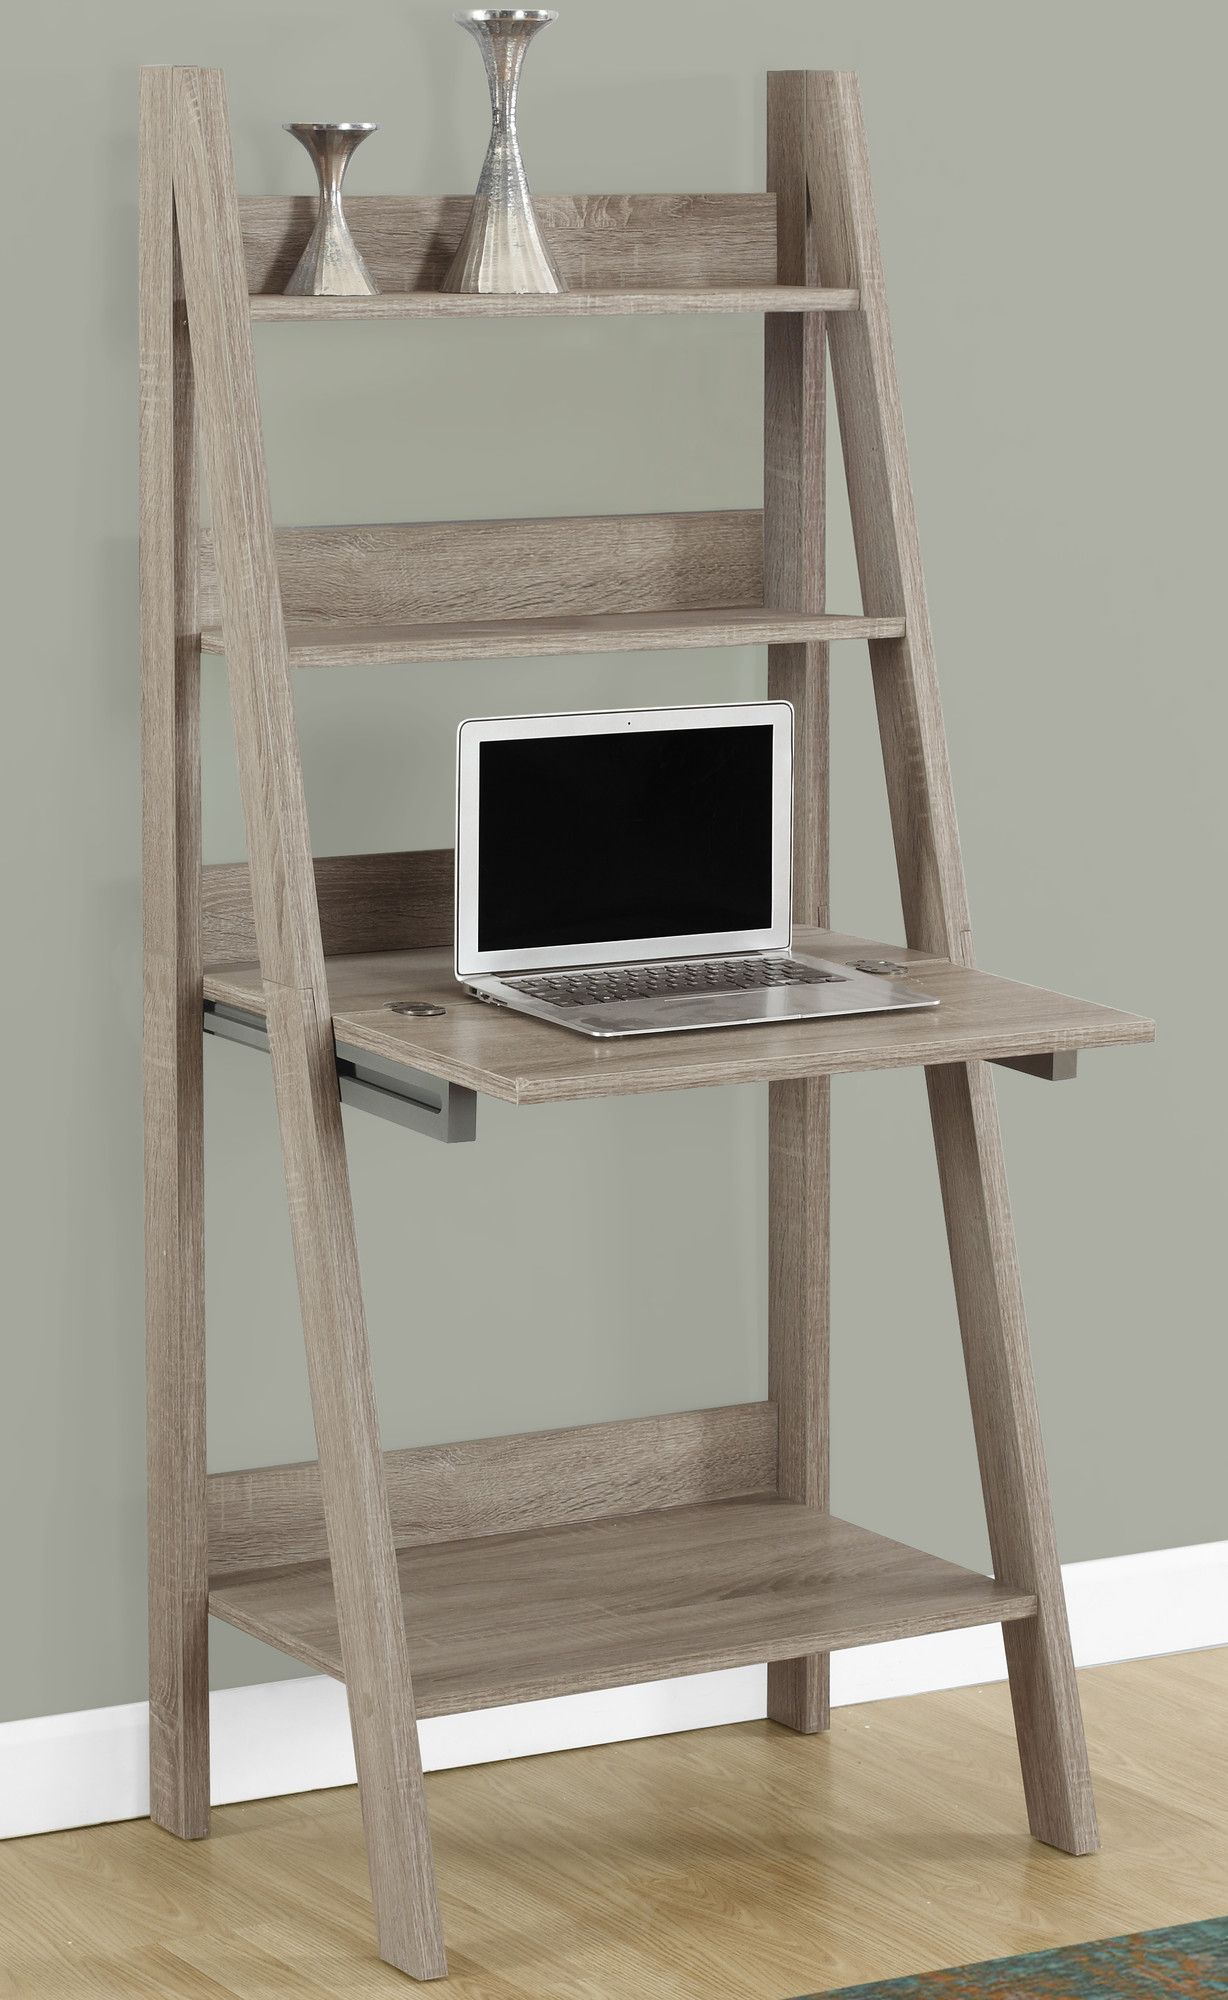 Shelby Leaning Ladder Desk Ladder Desk Home Office Furniture Home Decor